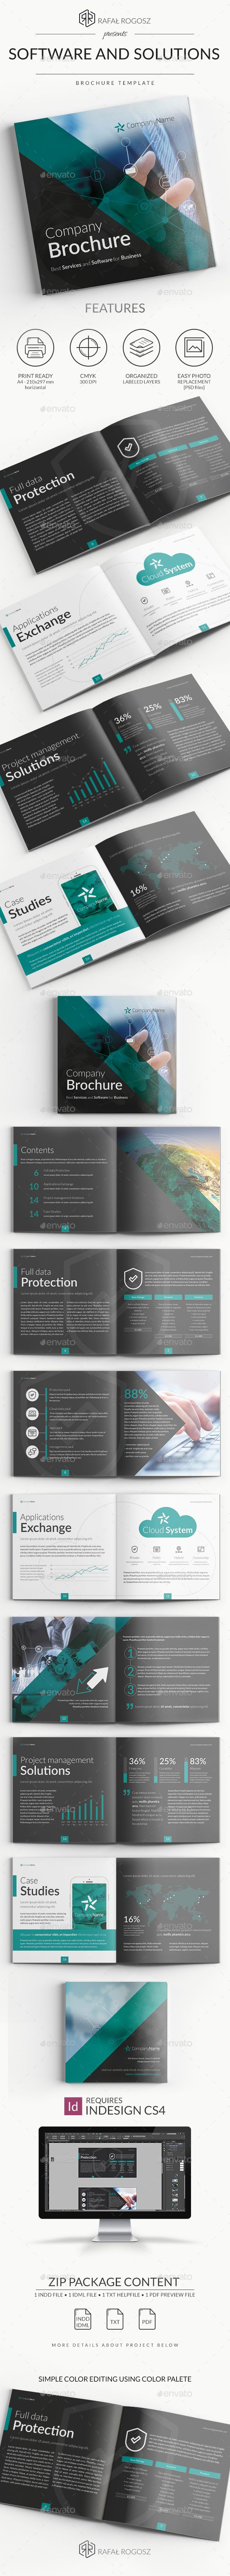 Software and Solutions #Brochure - #Brochures Print Templates Download here: https://graphicriver.net/item/software-and-solutions-brochure/19595516?ref=alena994